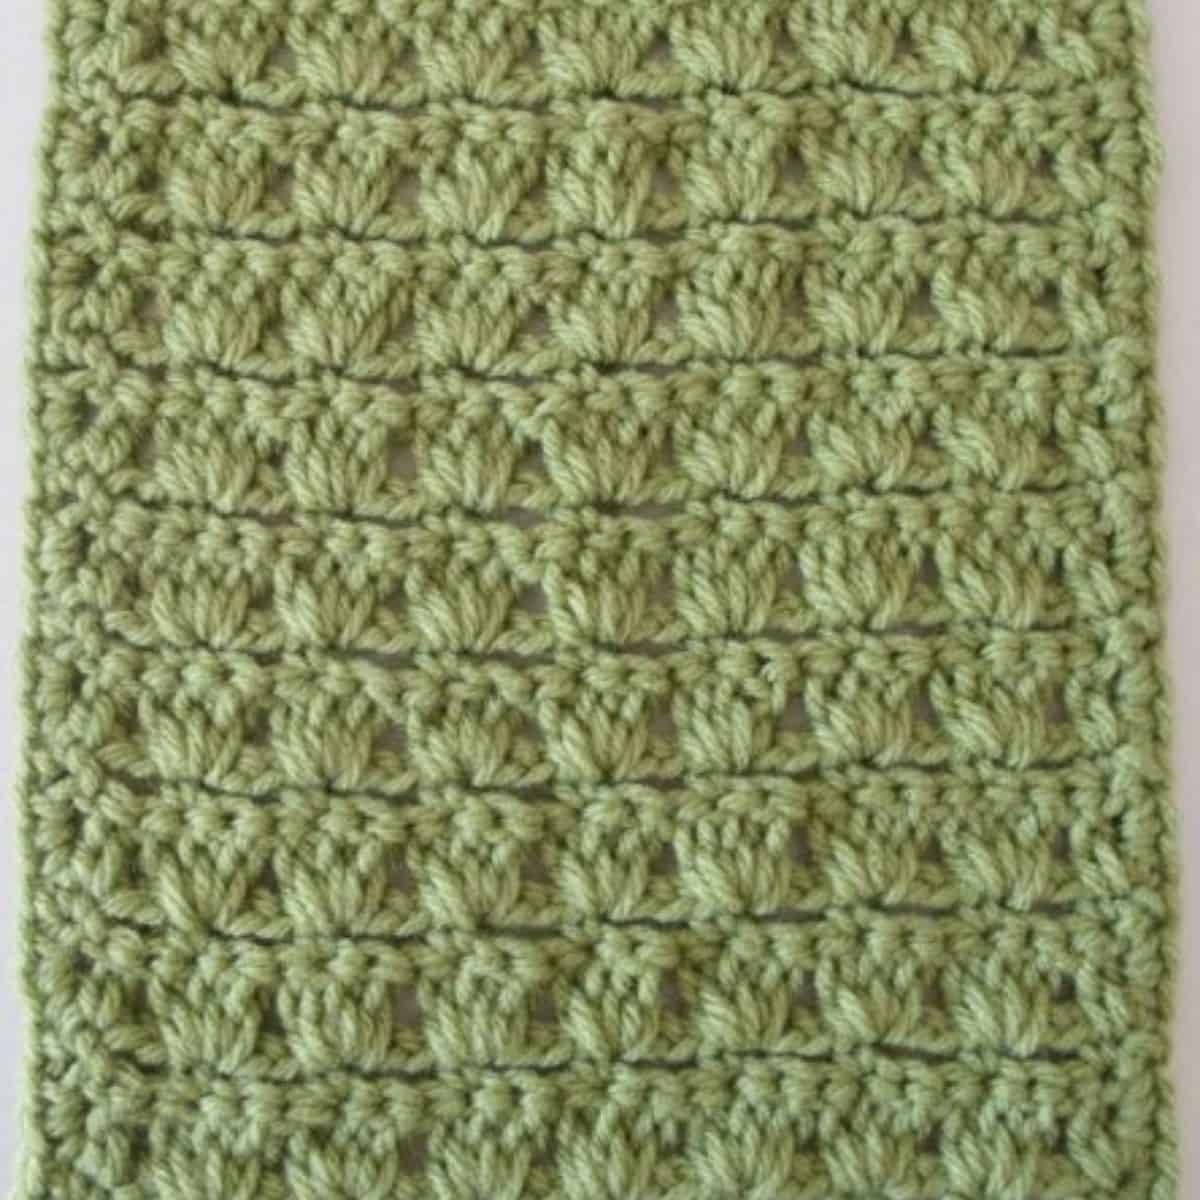 close up of a green swatch of textured crochet stitches